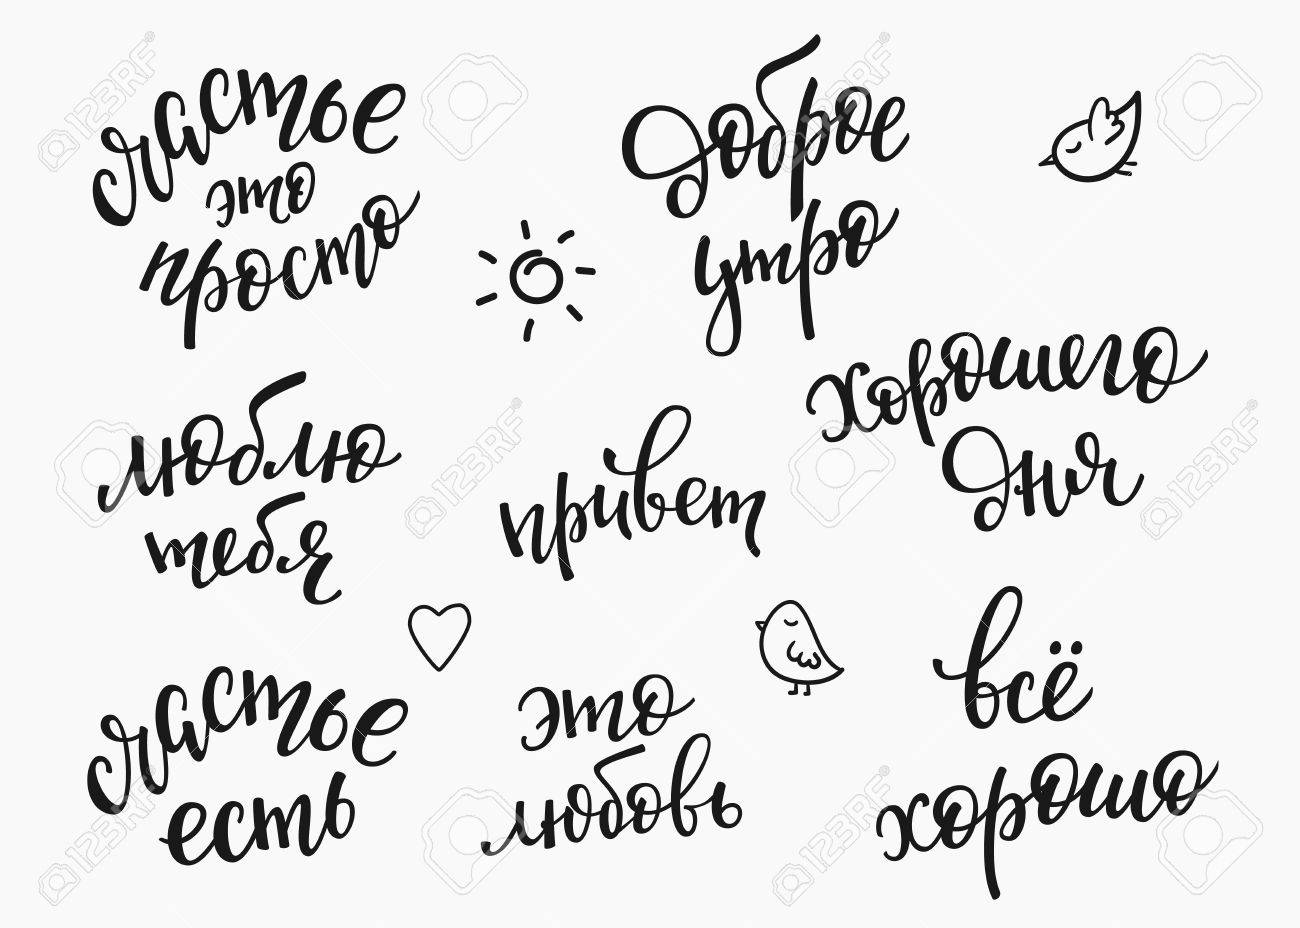 Life And Happiness Quotes Lettering Quotes Calligraphy Motivation For Life And Happiness